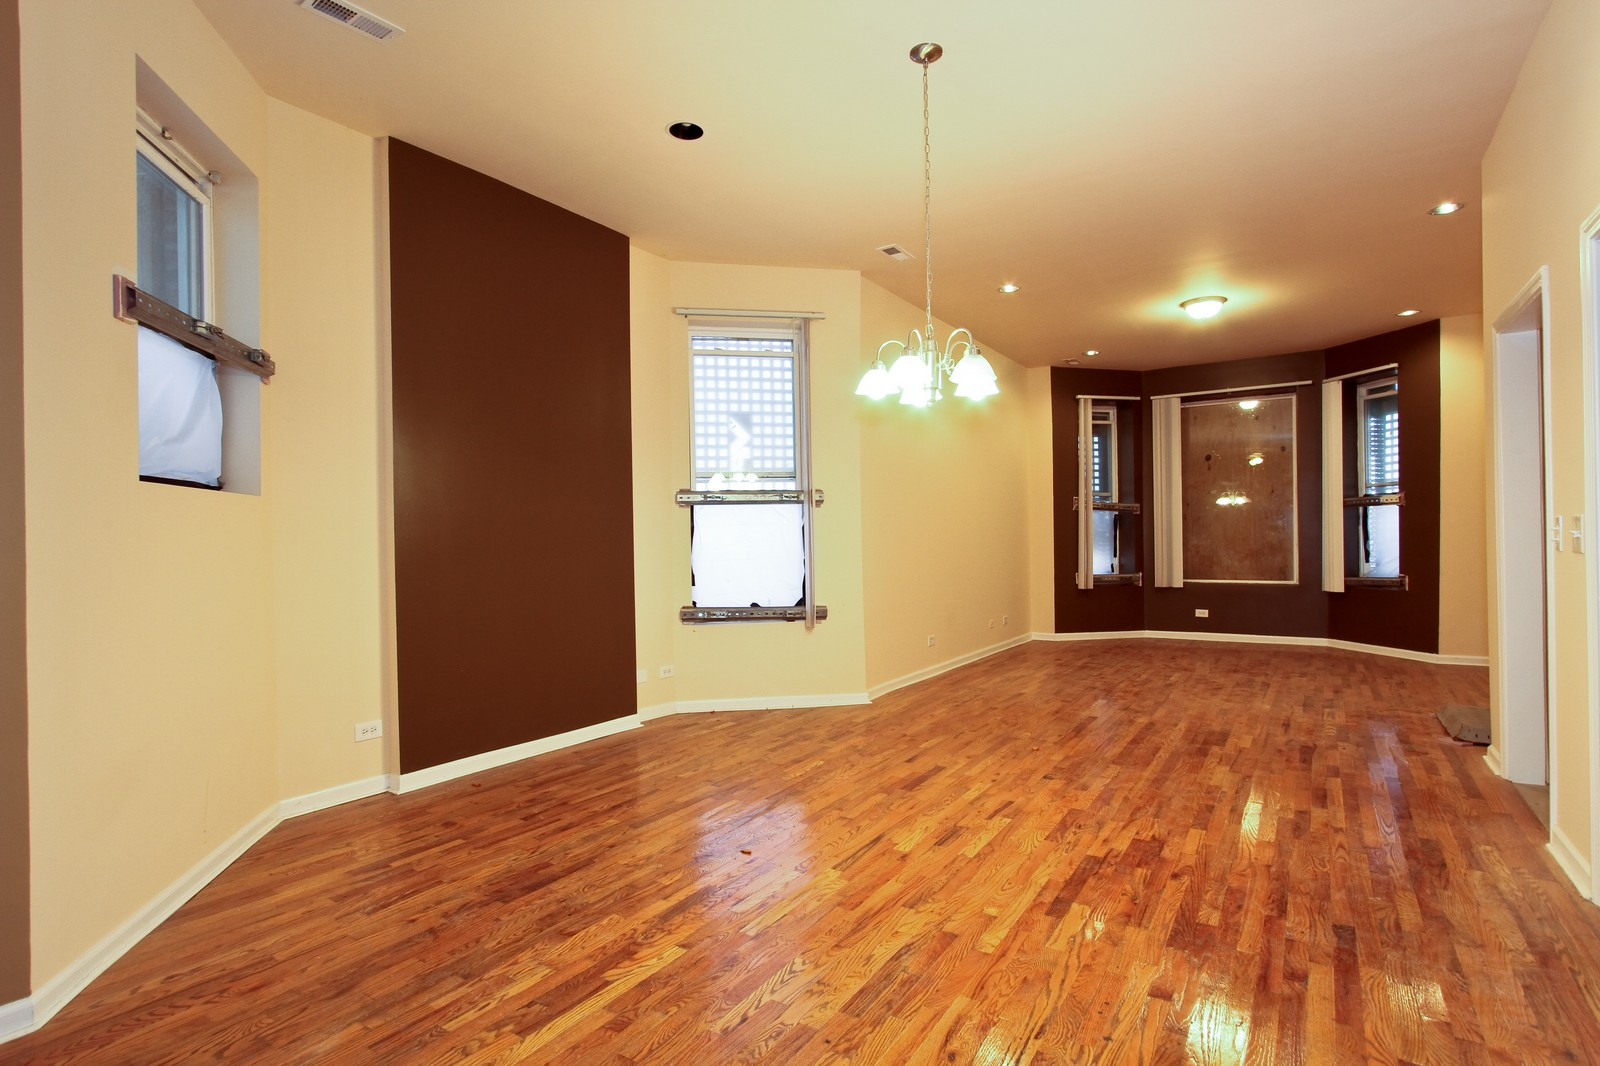 Real Estate Photography - 449 W 61st St, Chicago, IL, 60621 - Living Room / Dining Room